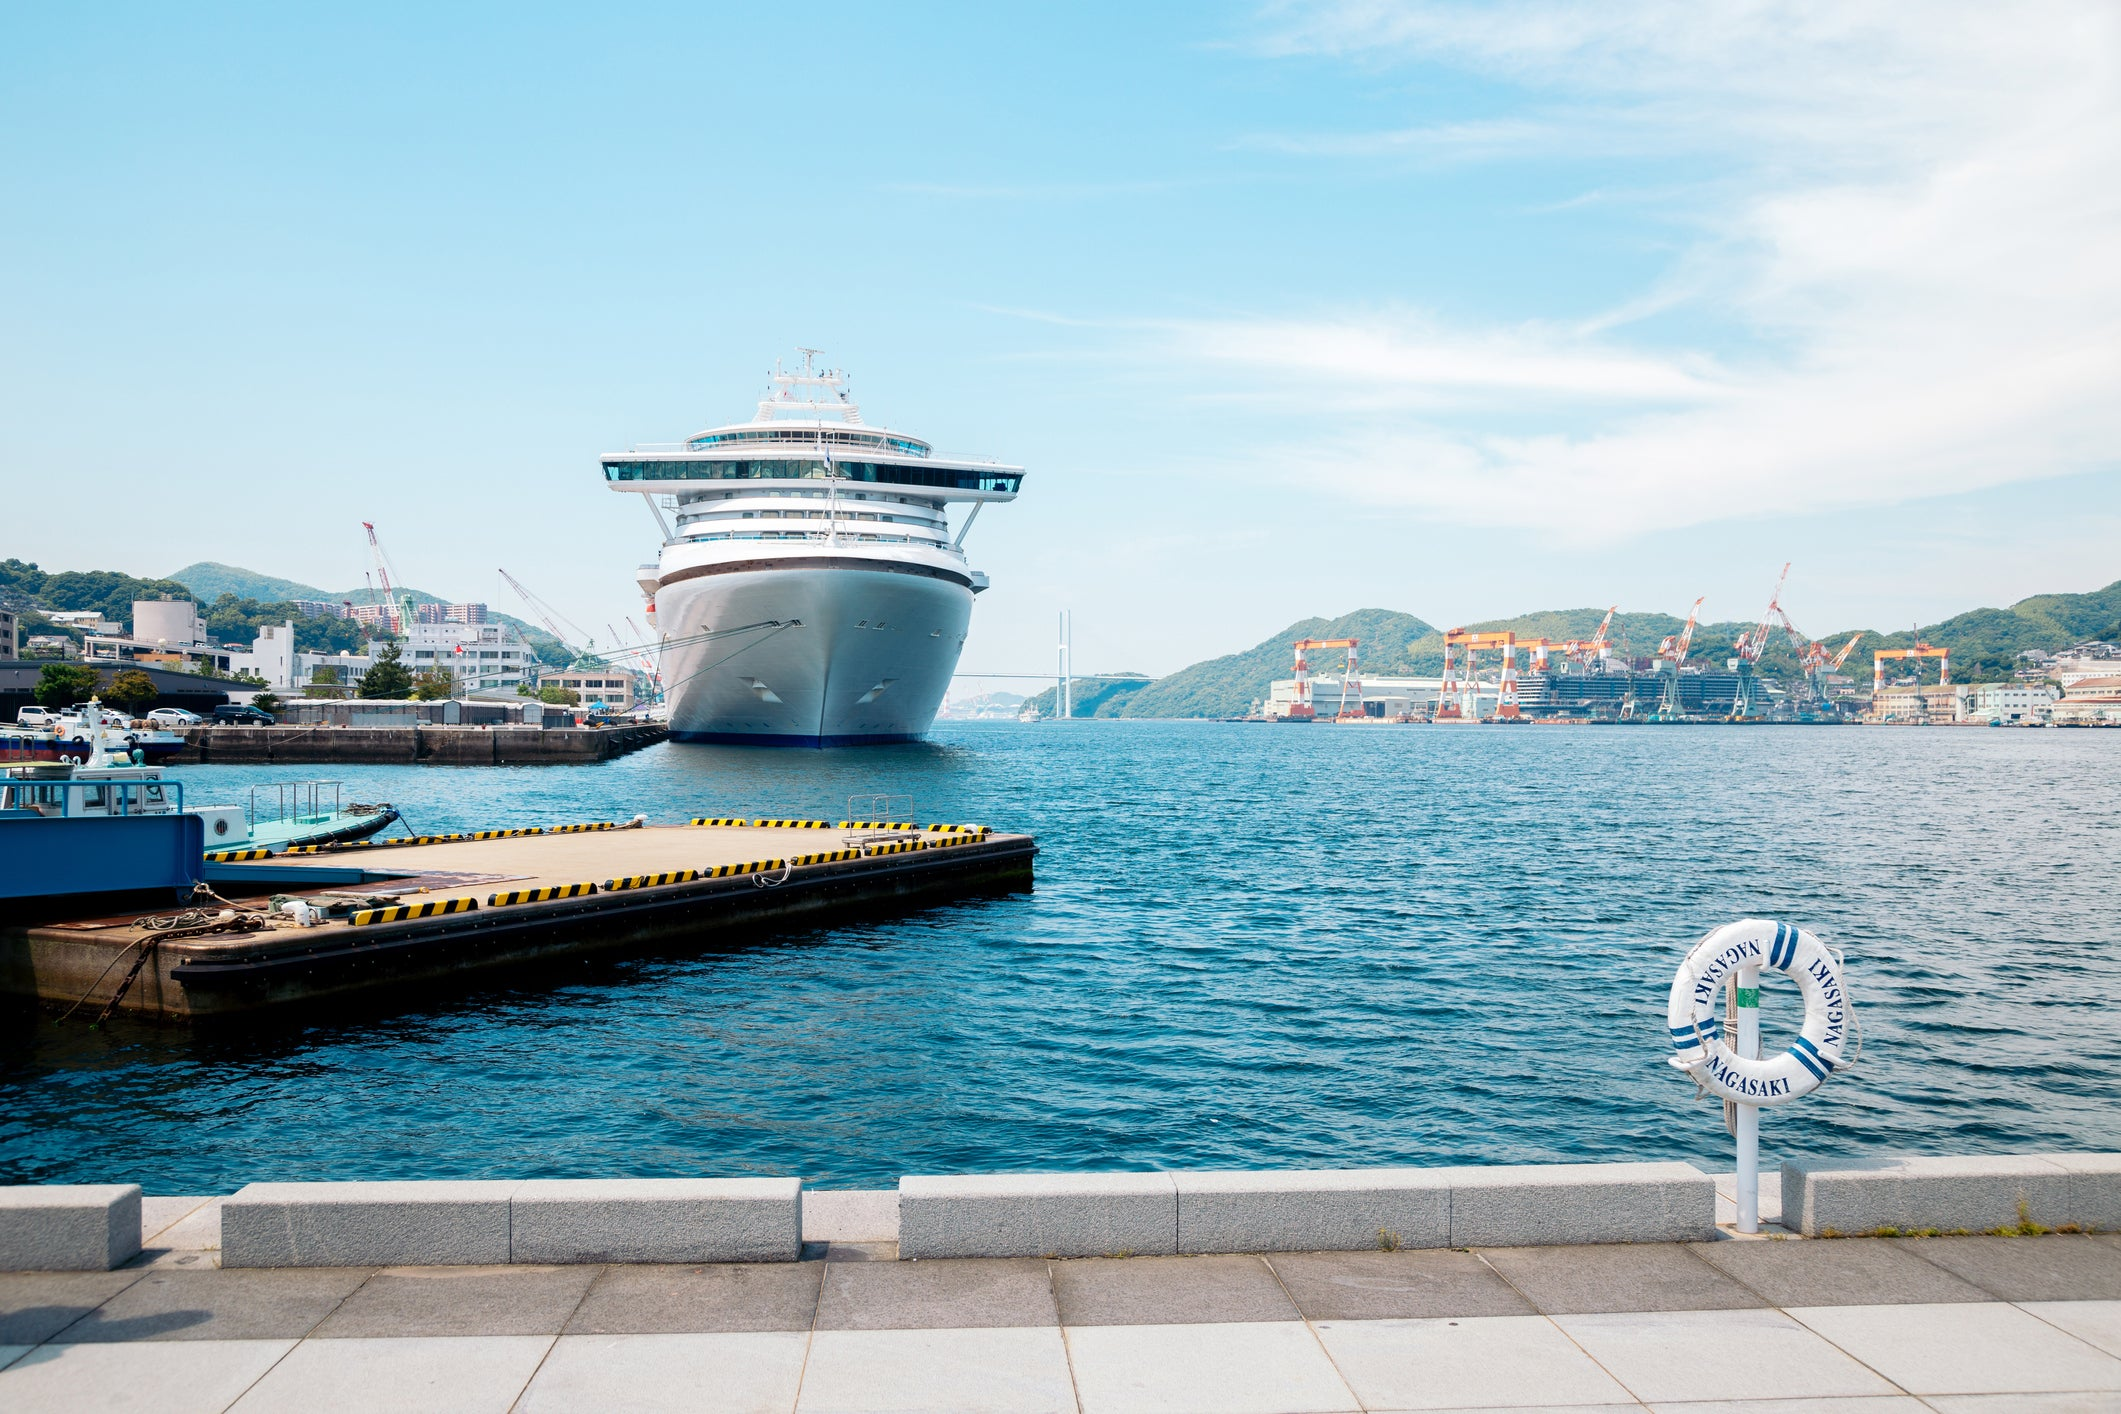 Why Carnival, Norwegian Cruise Line, and Royal Caribbean Cruises All Jumped Today - The Motley Fool